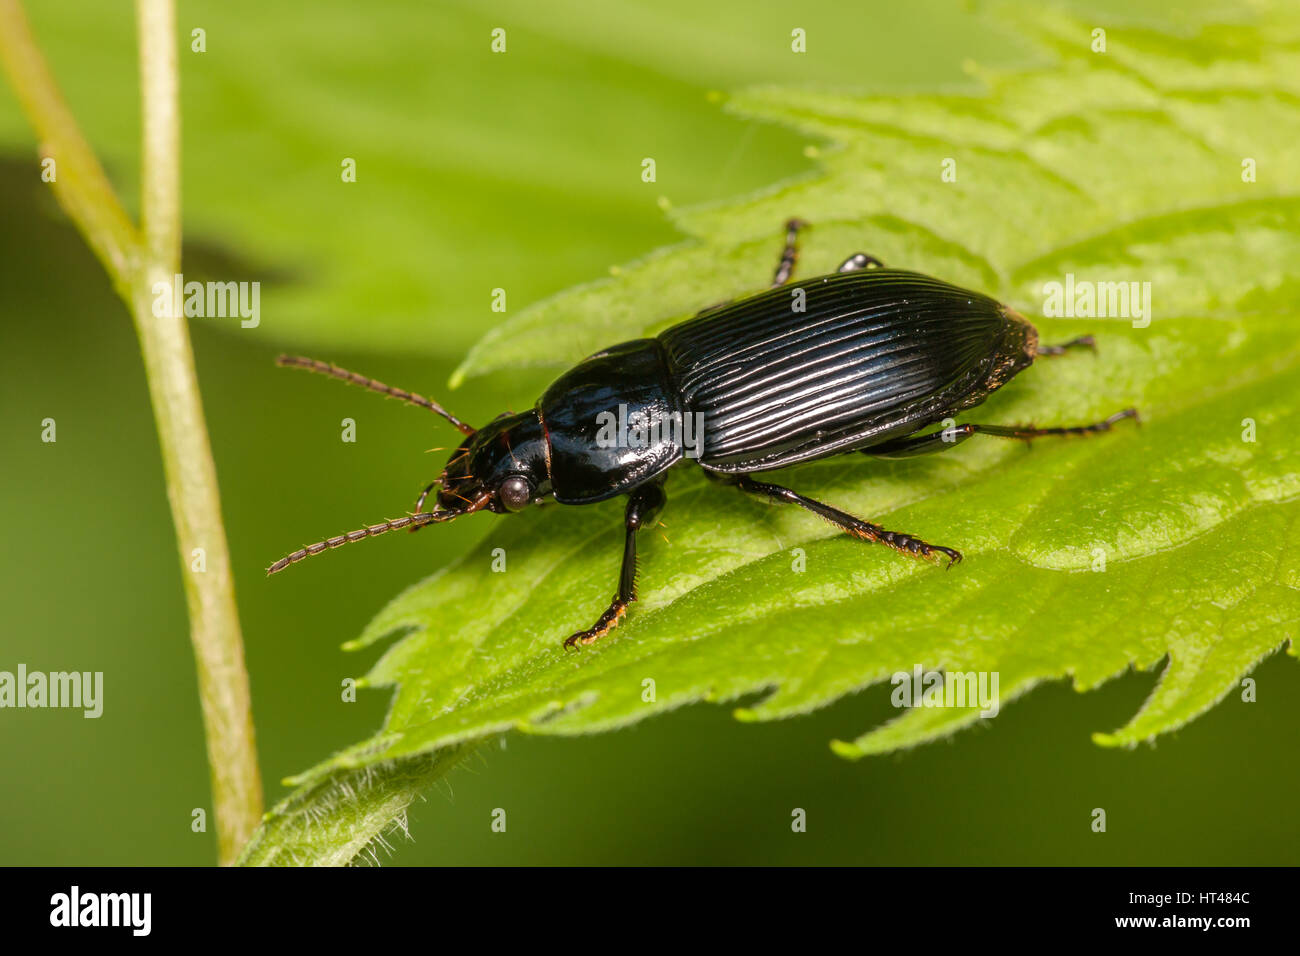 A Woodland Ground Beetle (Pterostichus sp.) perches on a leaf. - Stock Image